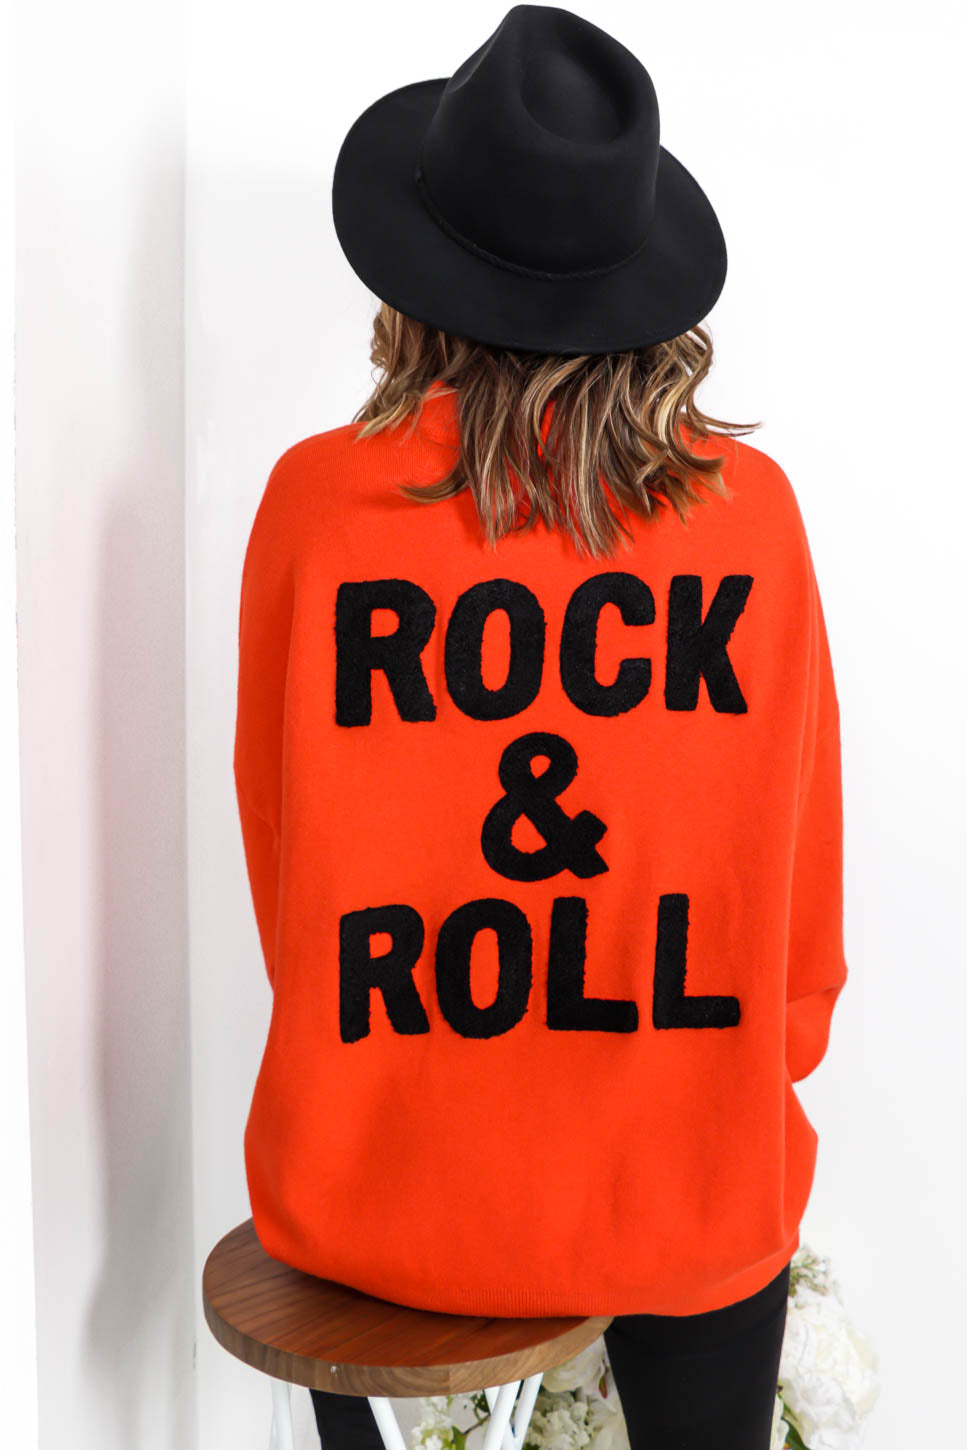 You're My Rock - Jumper In ORANGE